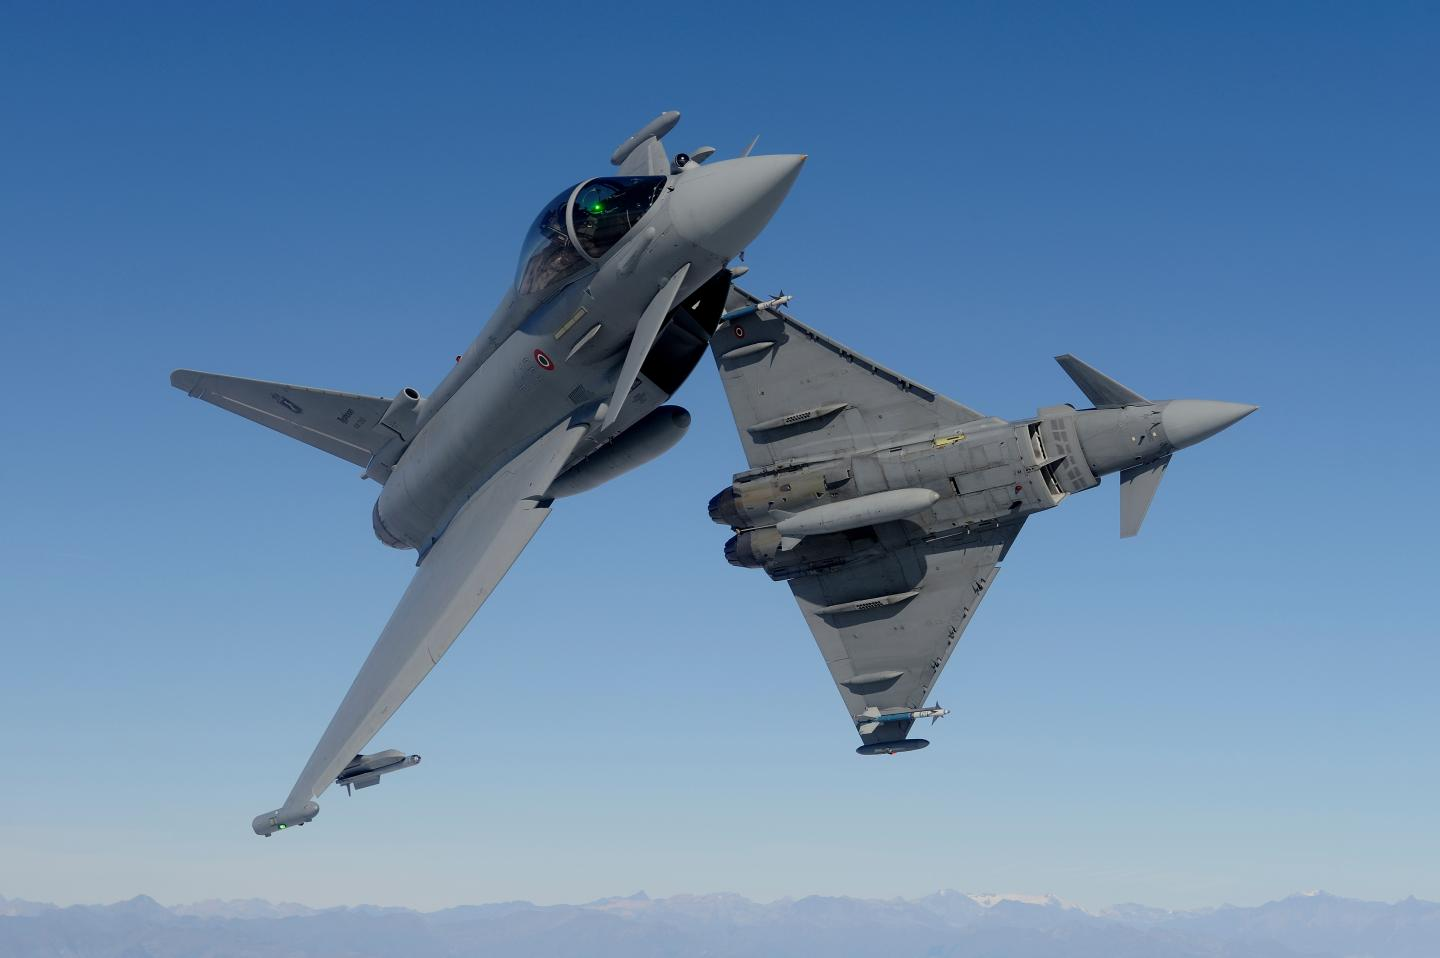 Eurofighter Typhoon EFA